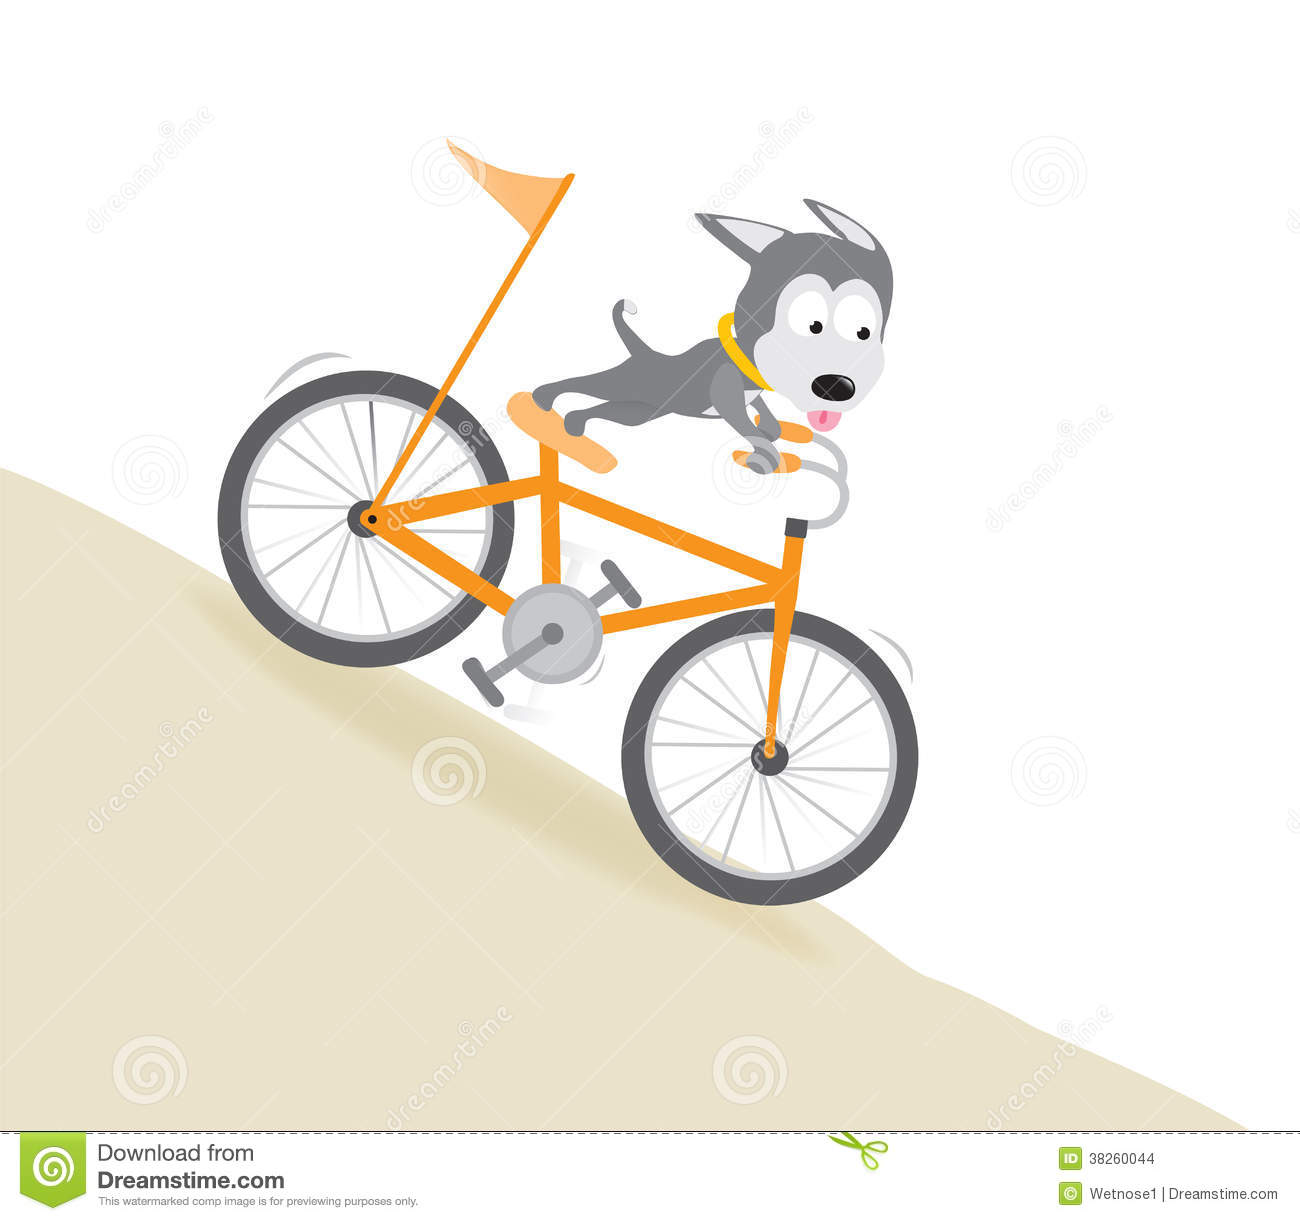 dog riding motorcycle clipart - photo #27